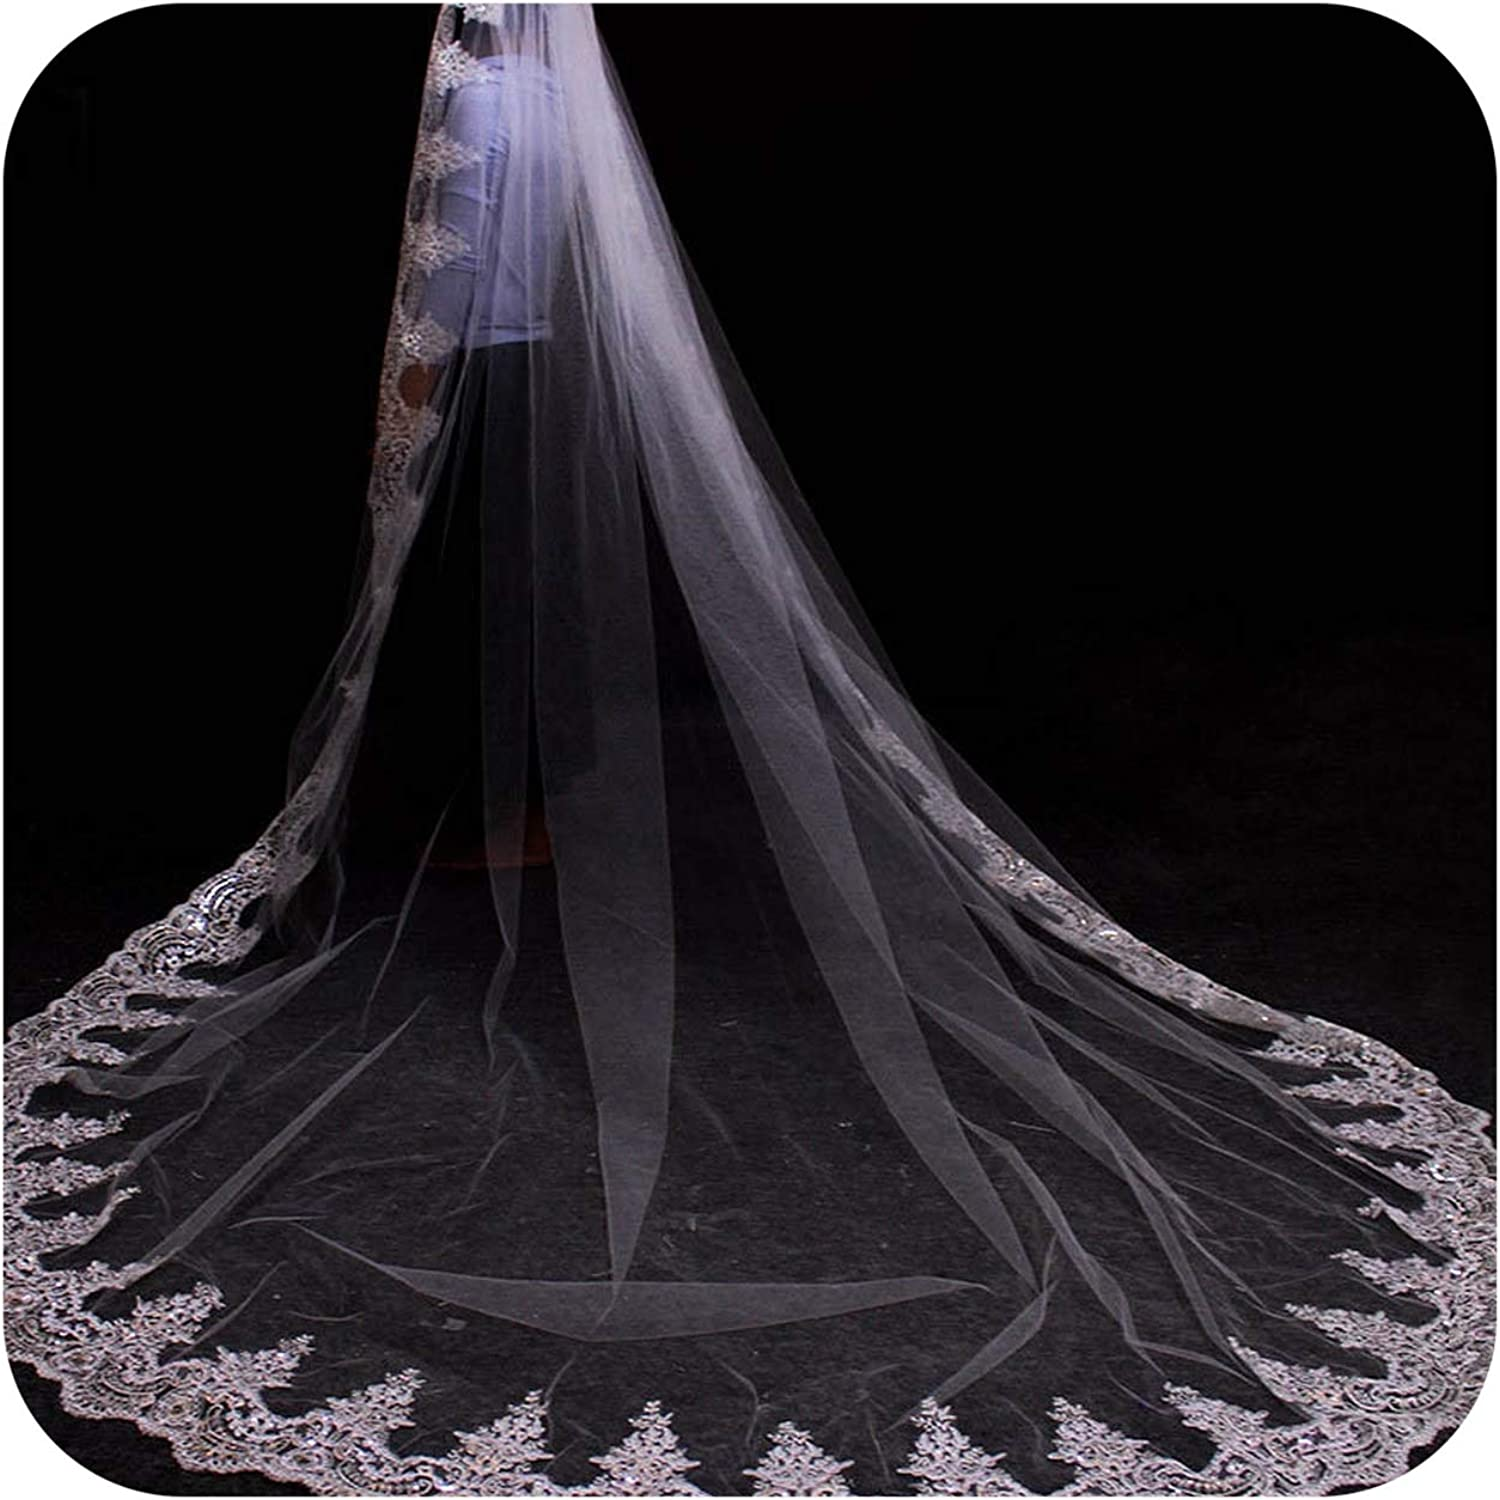 3 Meters White Ivory Cathedral Mantilla Wedding Veils Long Lace Edge Bridal Veil with Comb Wedding Accessories Bride,WHITE,200cm